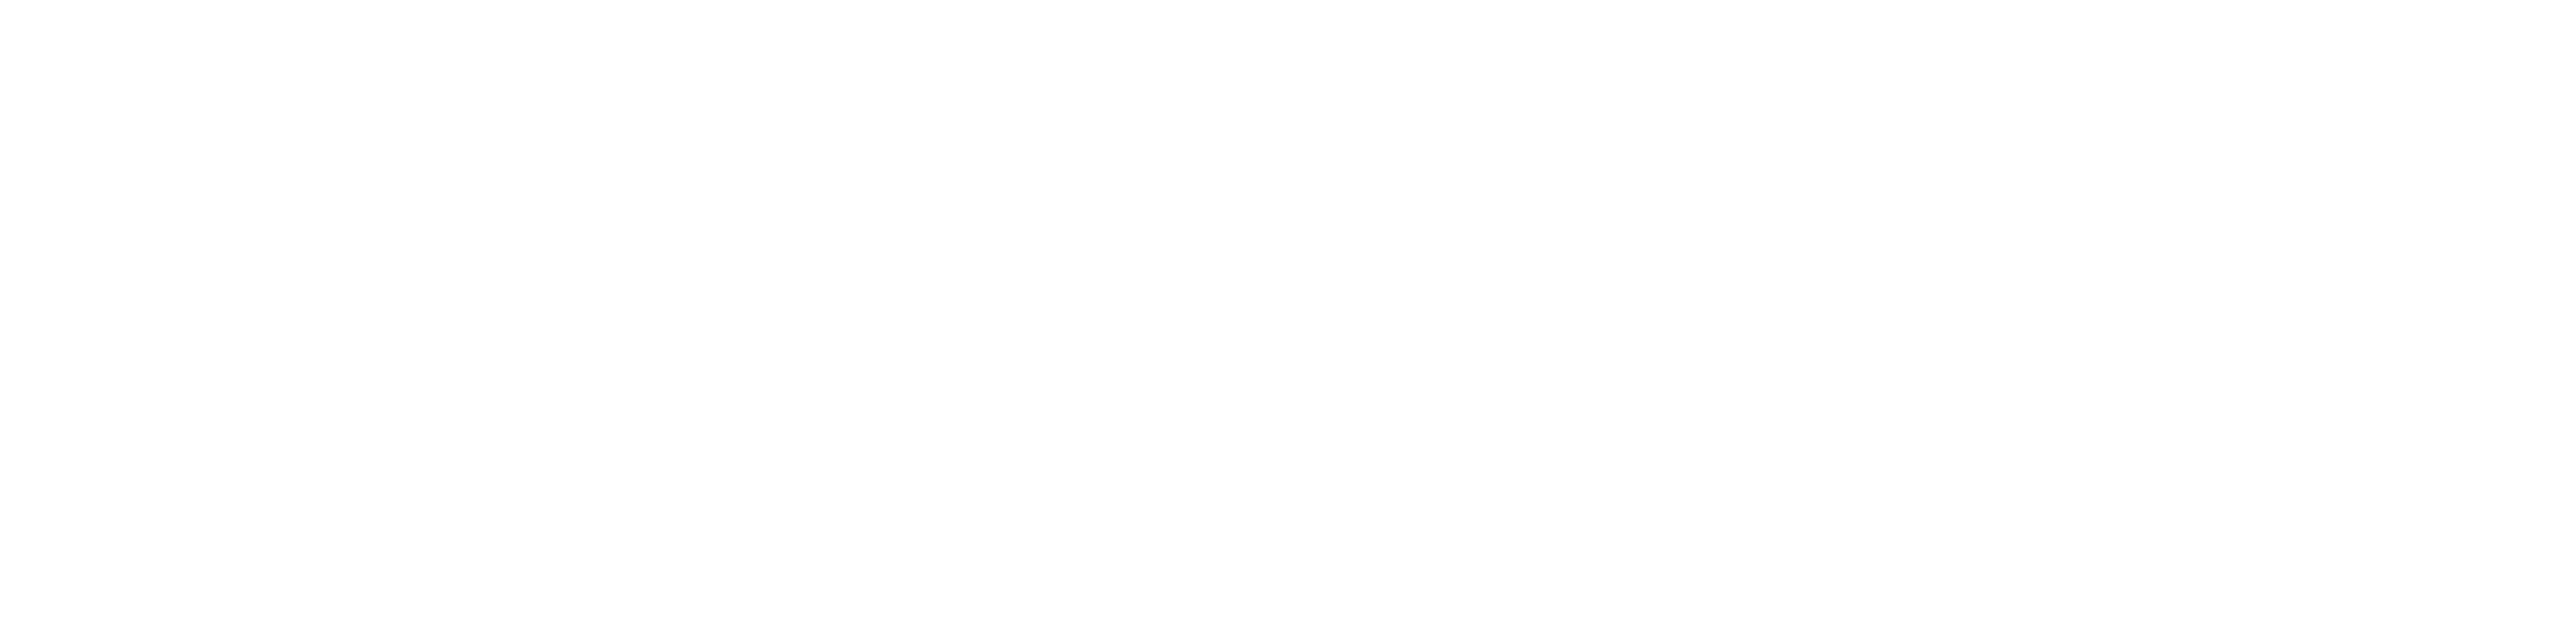 Chinese Club of Western New York